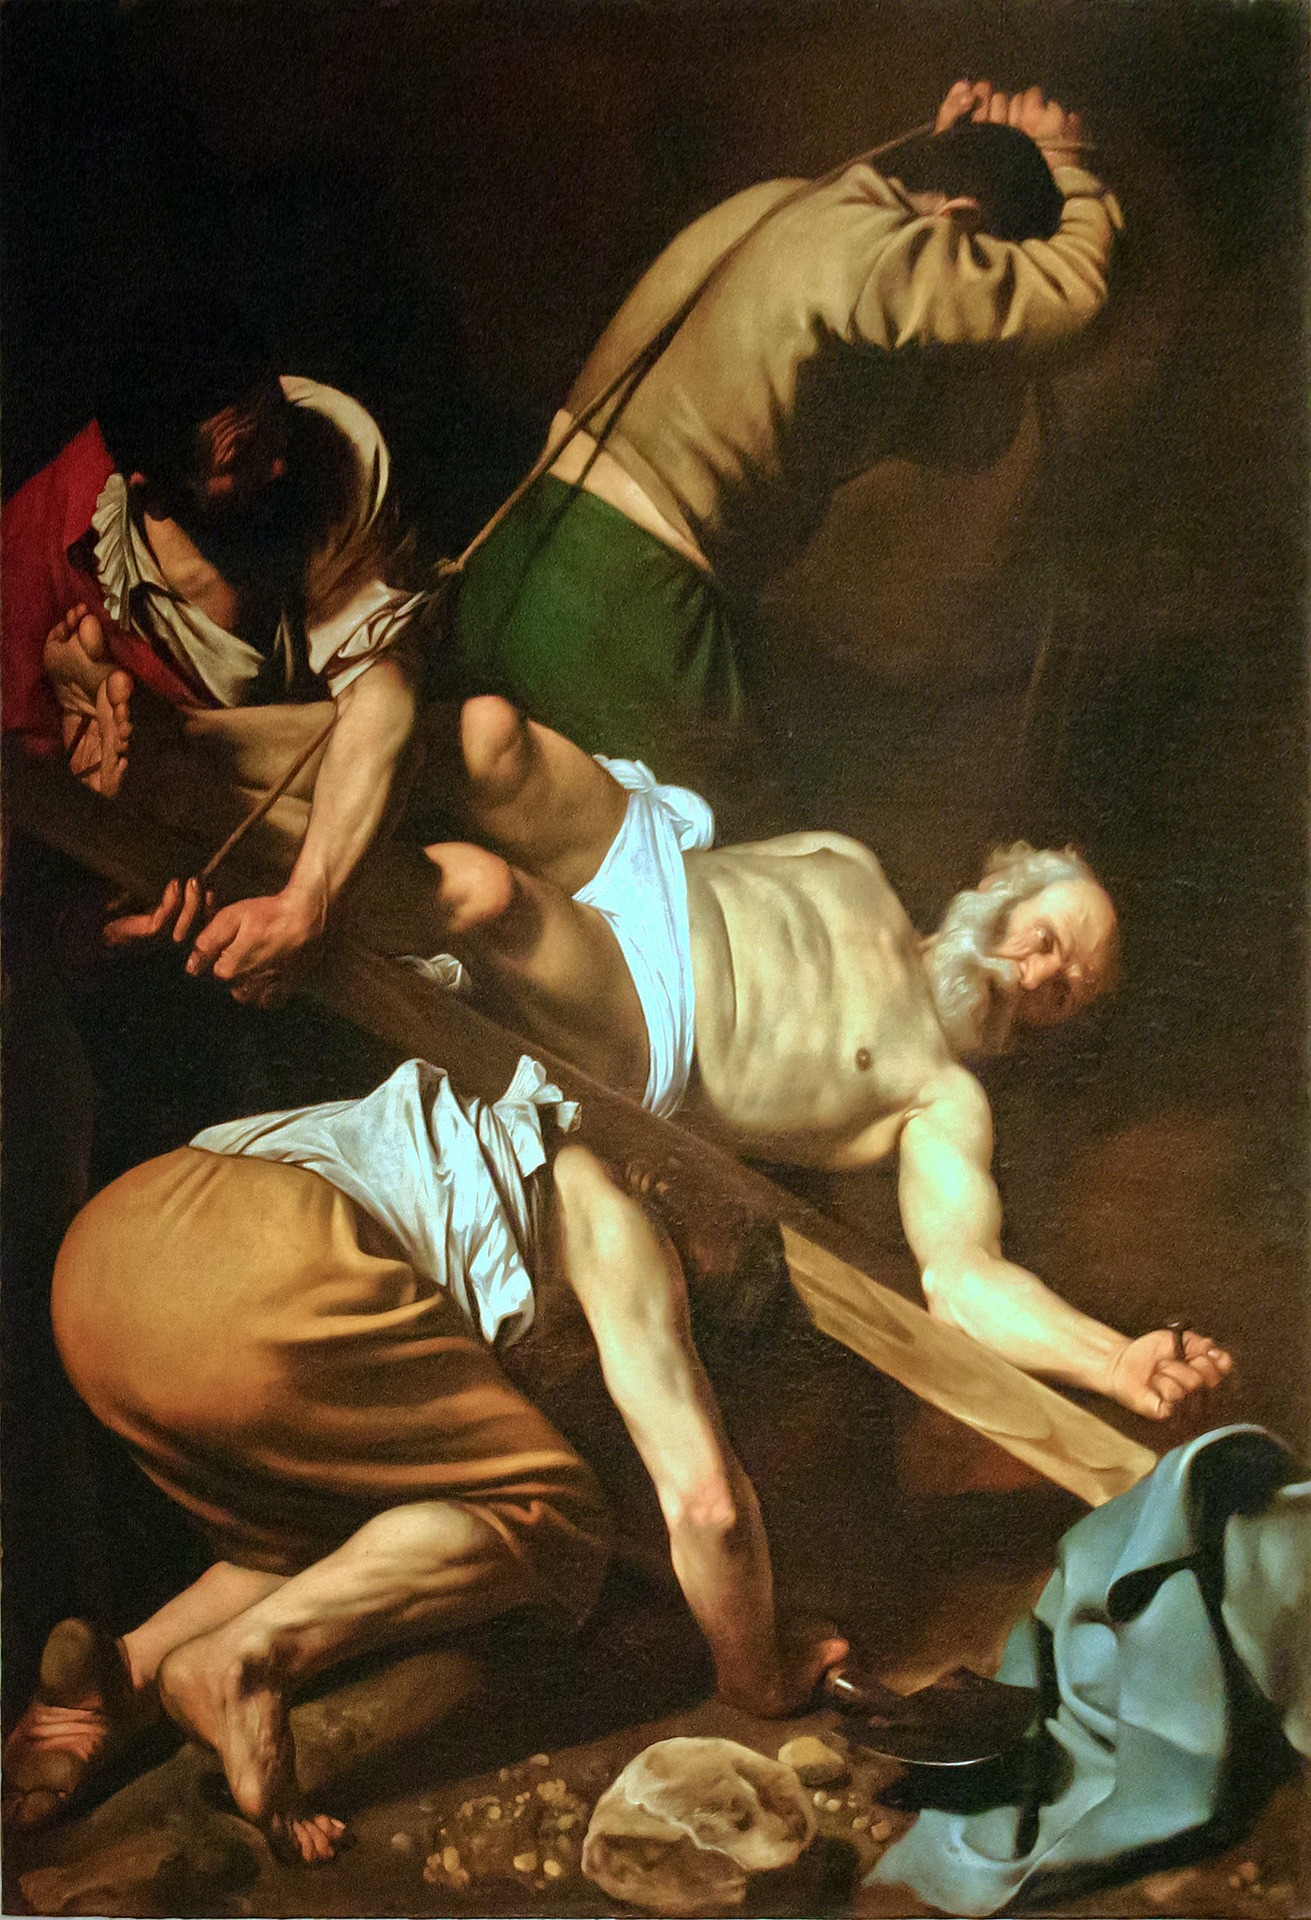 The Crucifixion of St. Peter, painting by Caravaggio